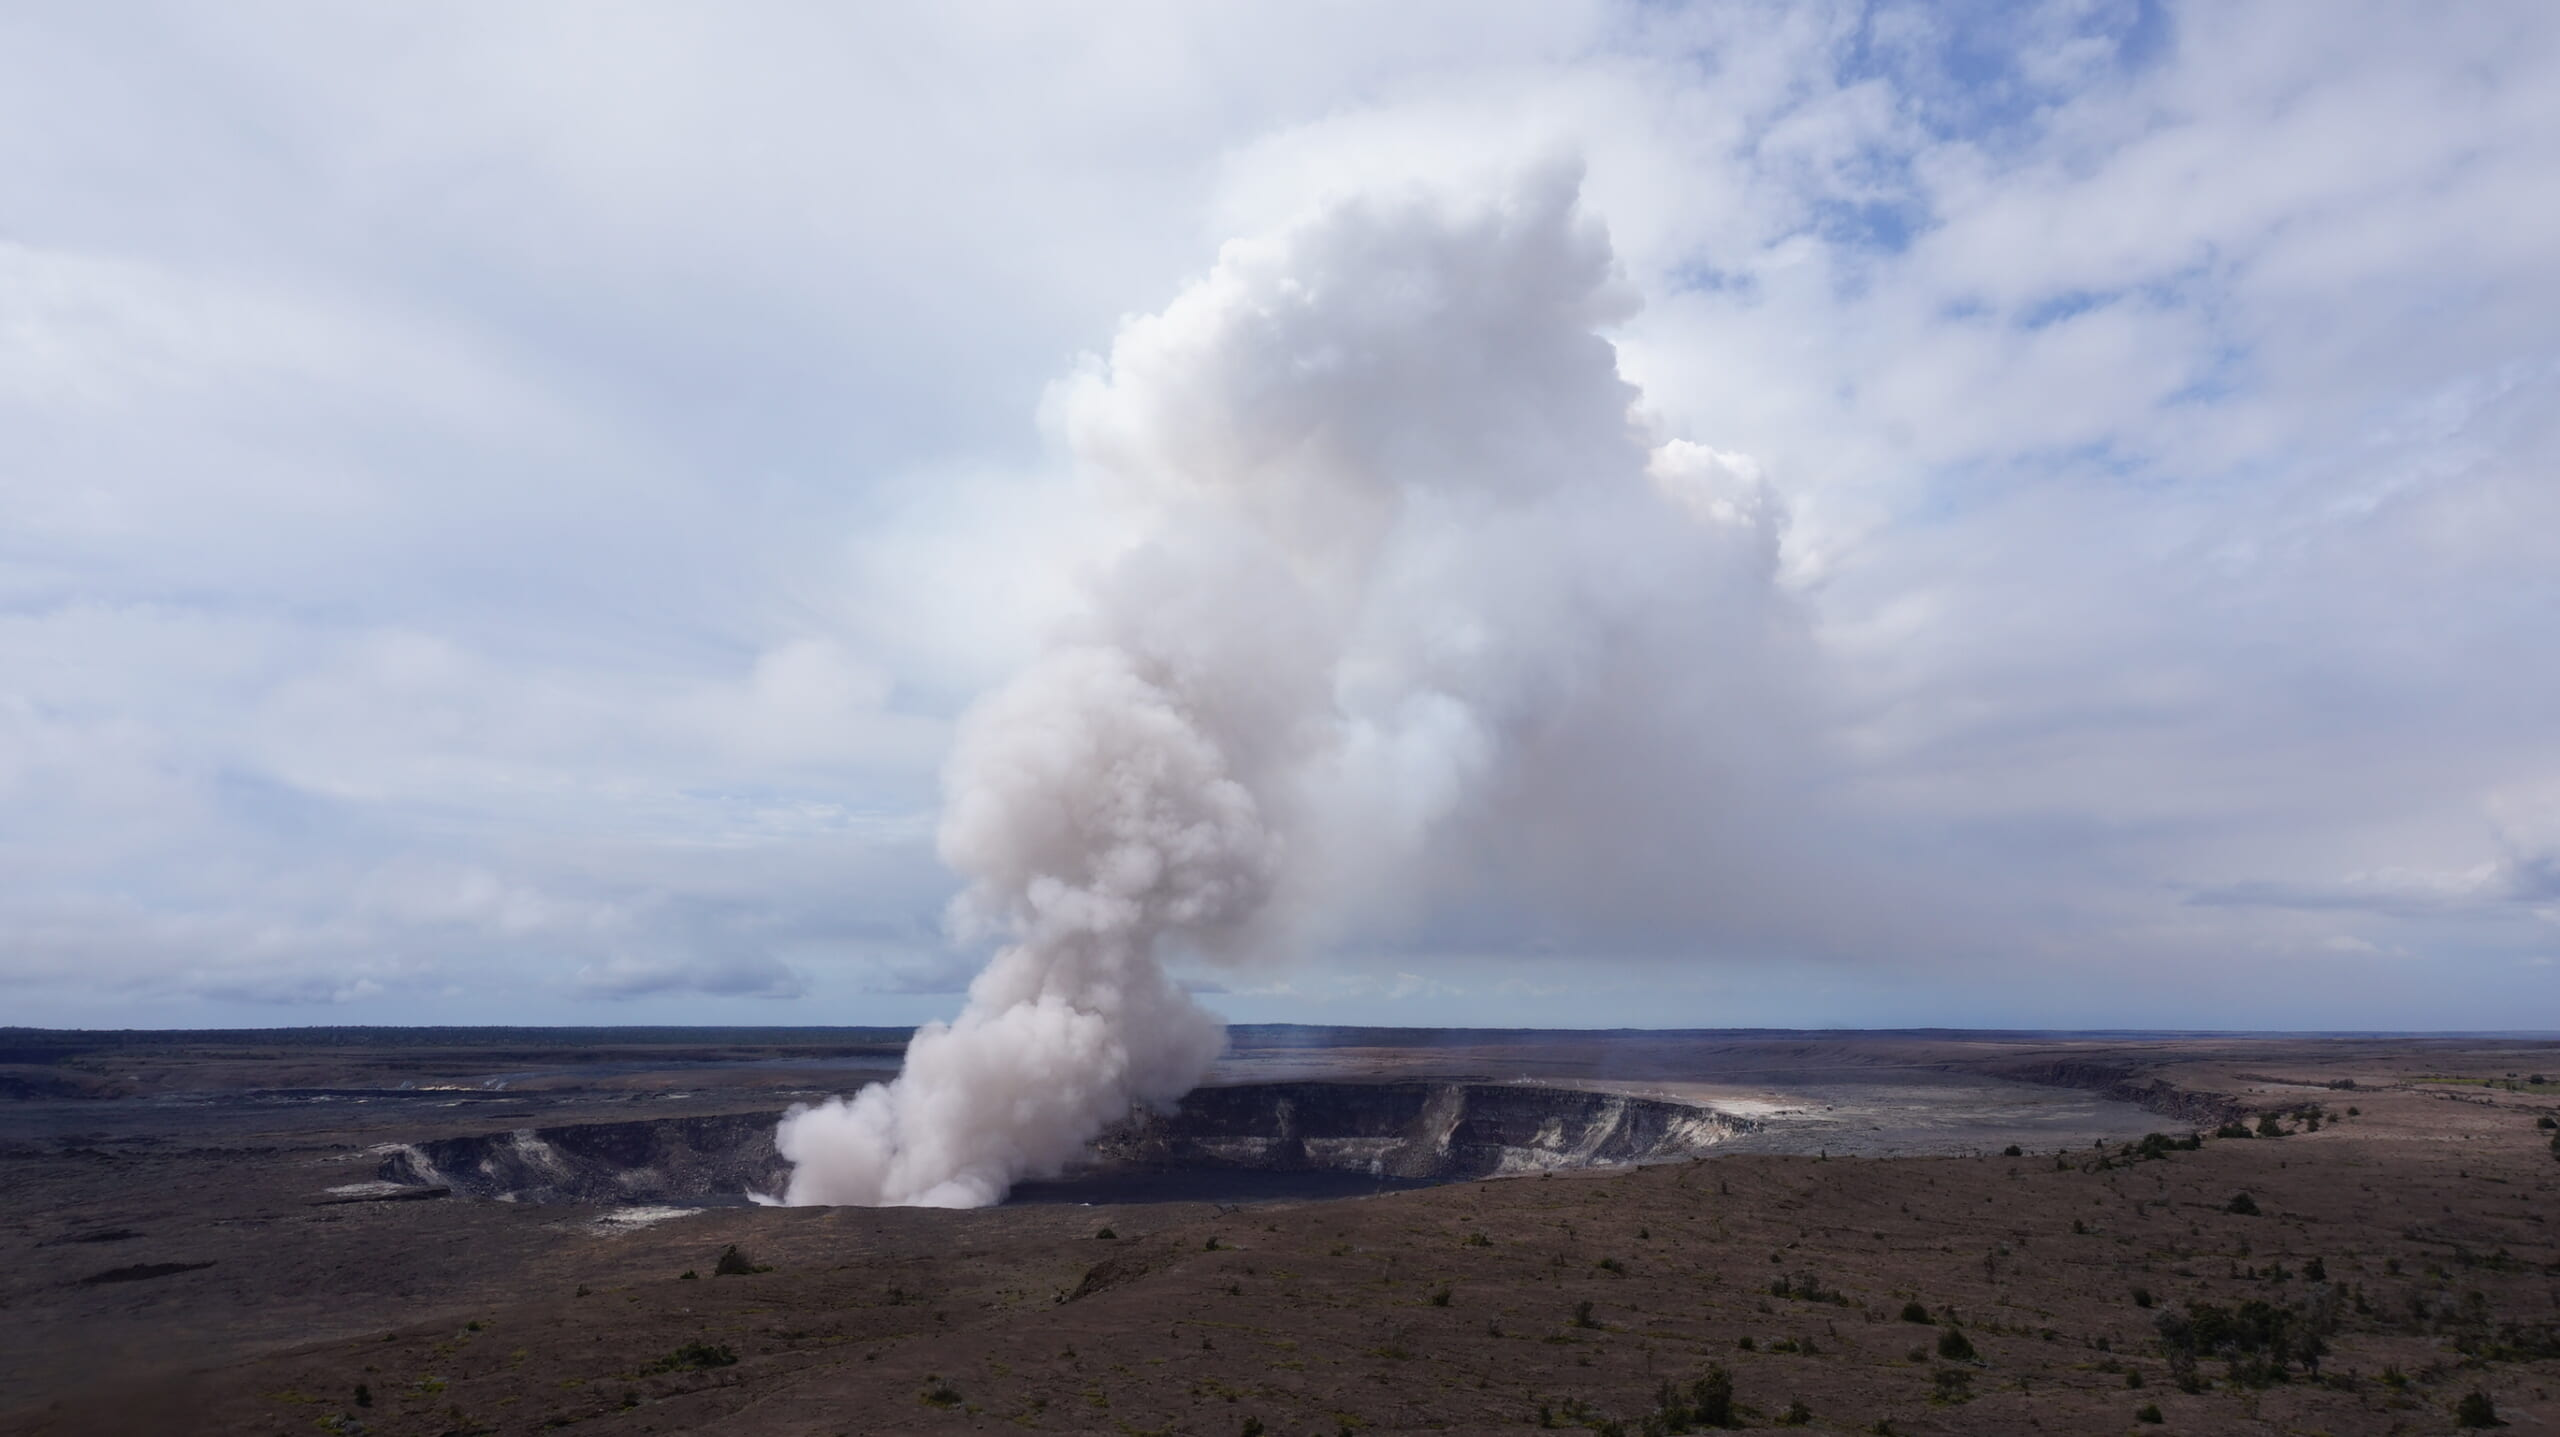 ハワイ火山国立公園/Hawaii Volcanoes National Park